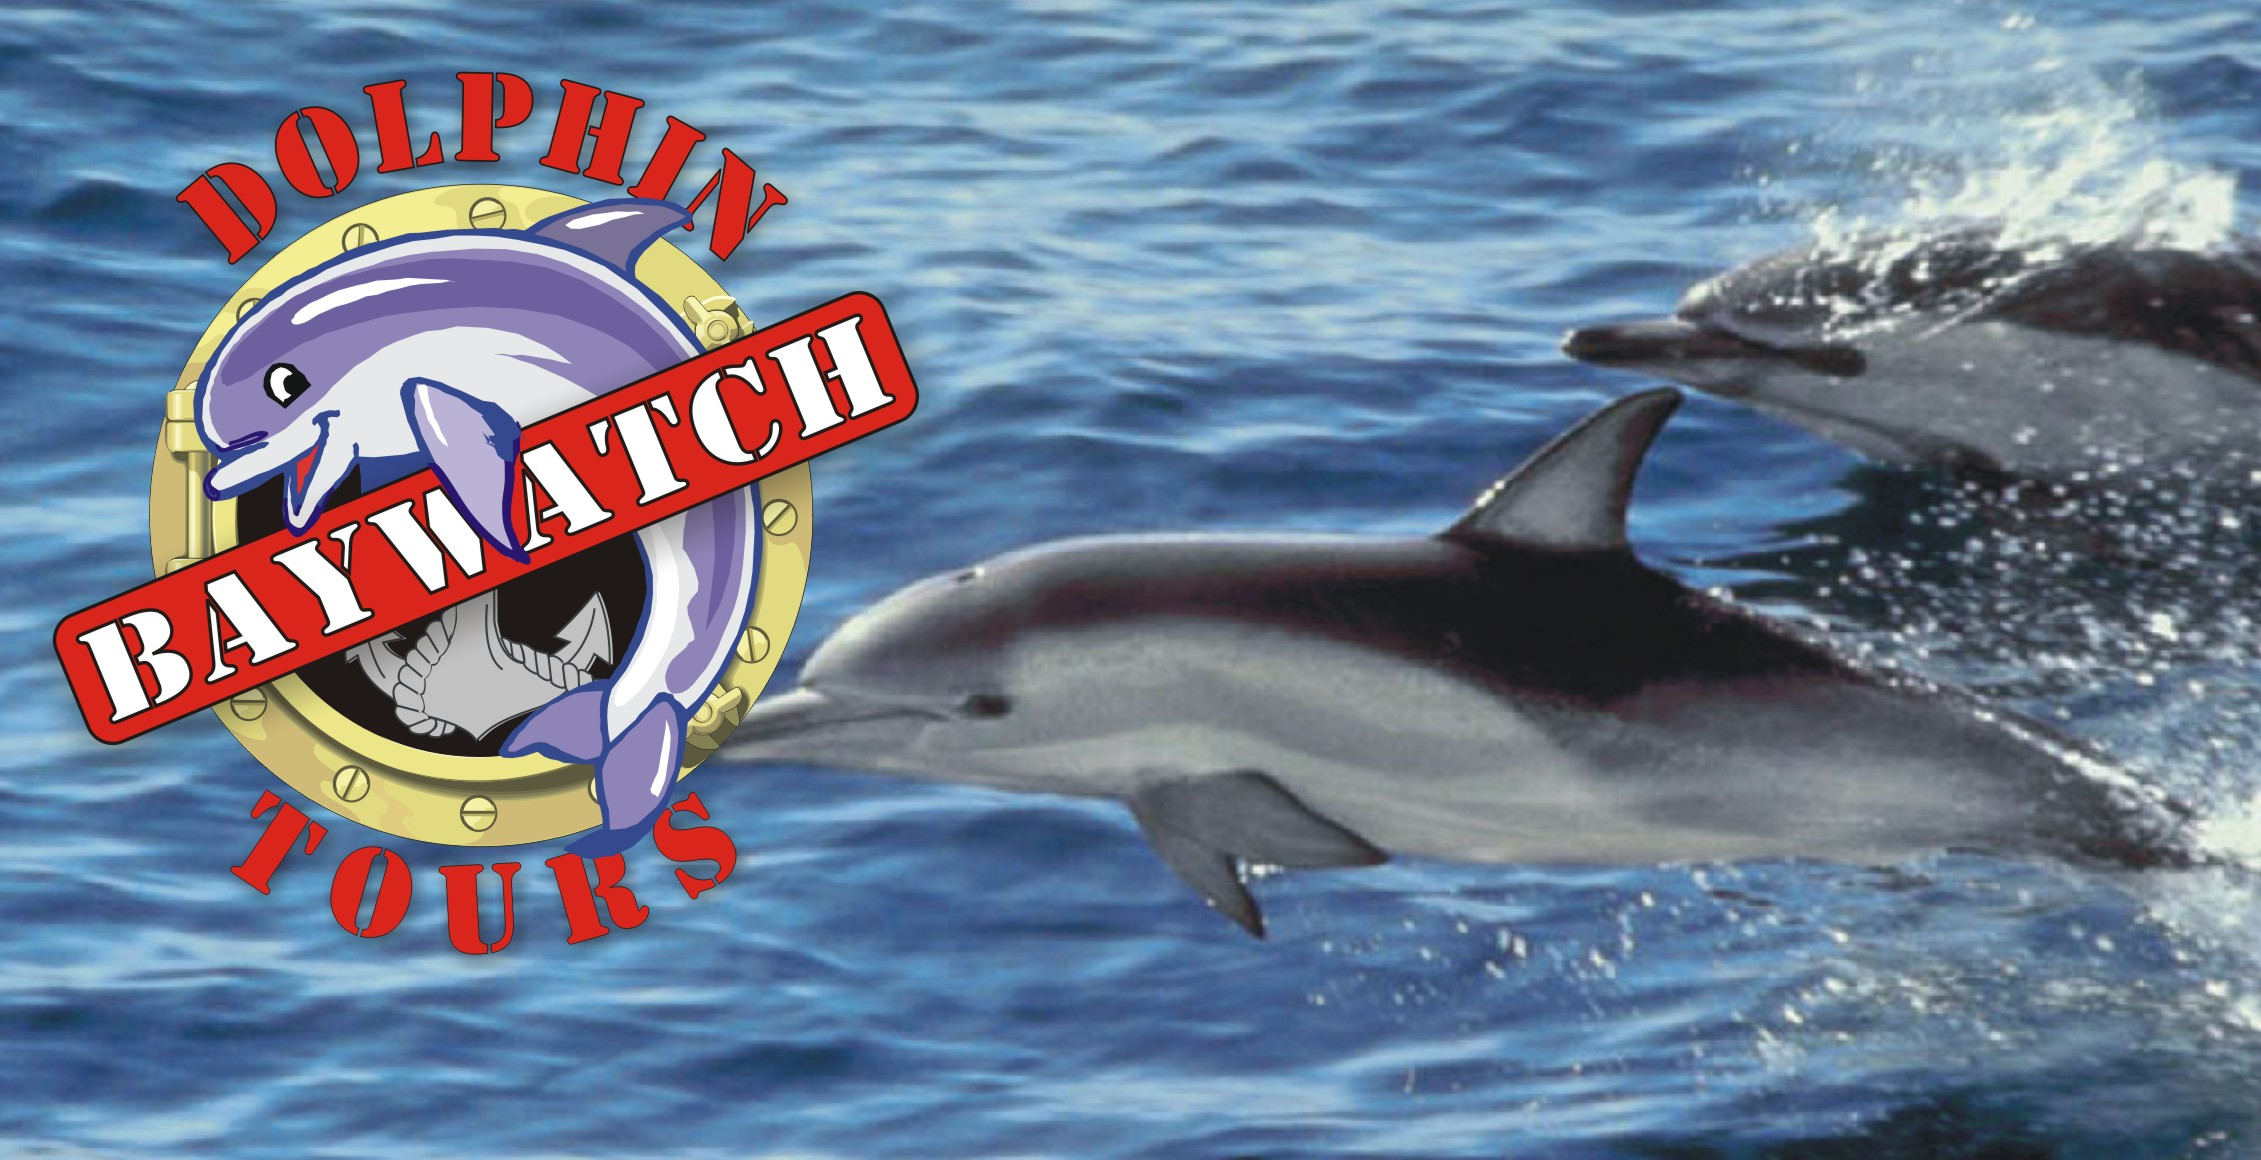 BayWatch Dolphin Tours   The Home Of Affordable Family Fun In Galveston,  Texas. Come Spot The Dolphins With Us On Galveston Harbor!